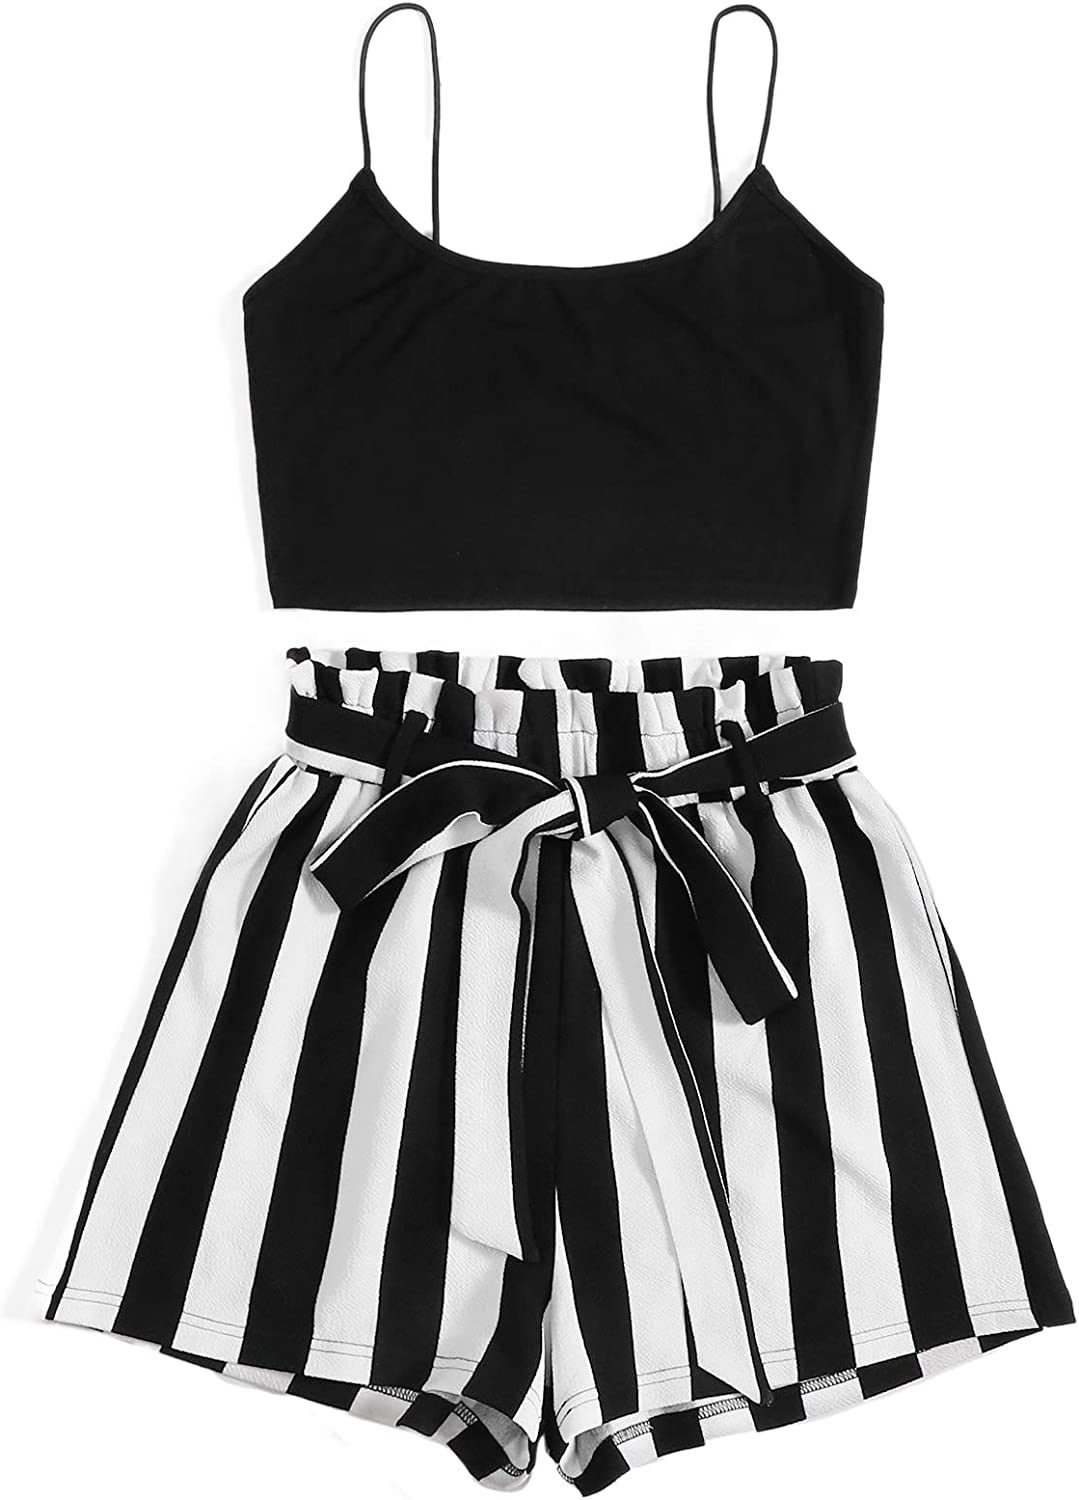 SweatyRocks Women's 2 Piece Outfits Strappy Crop Top with Striped Shorts Set